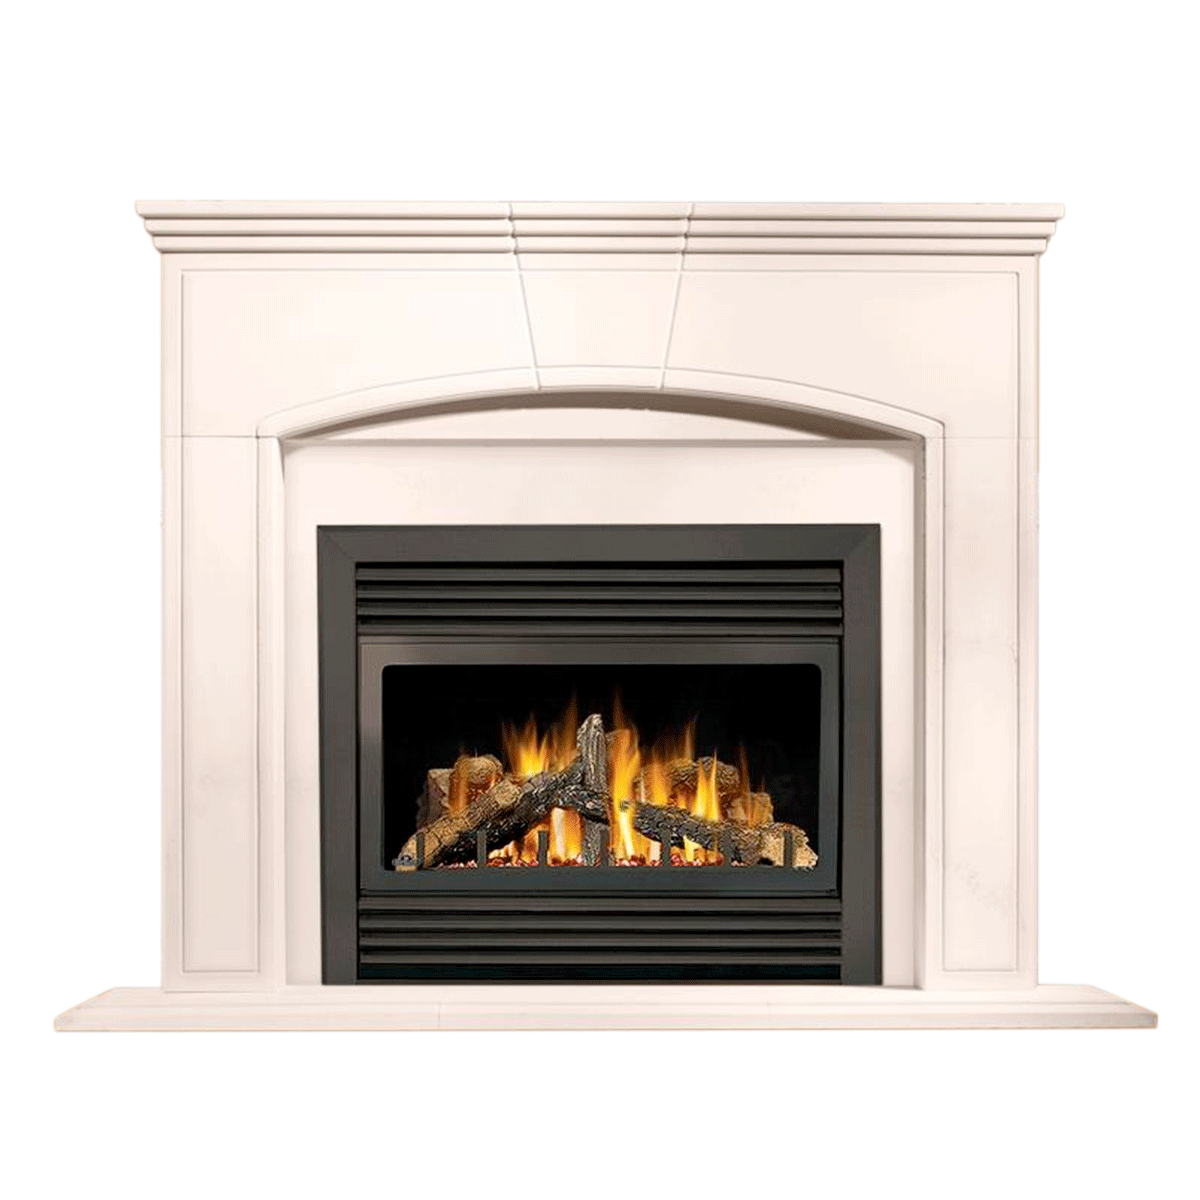 Buy Fireplace Equipment Fireplace Accessories Fireplac